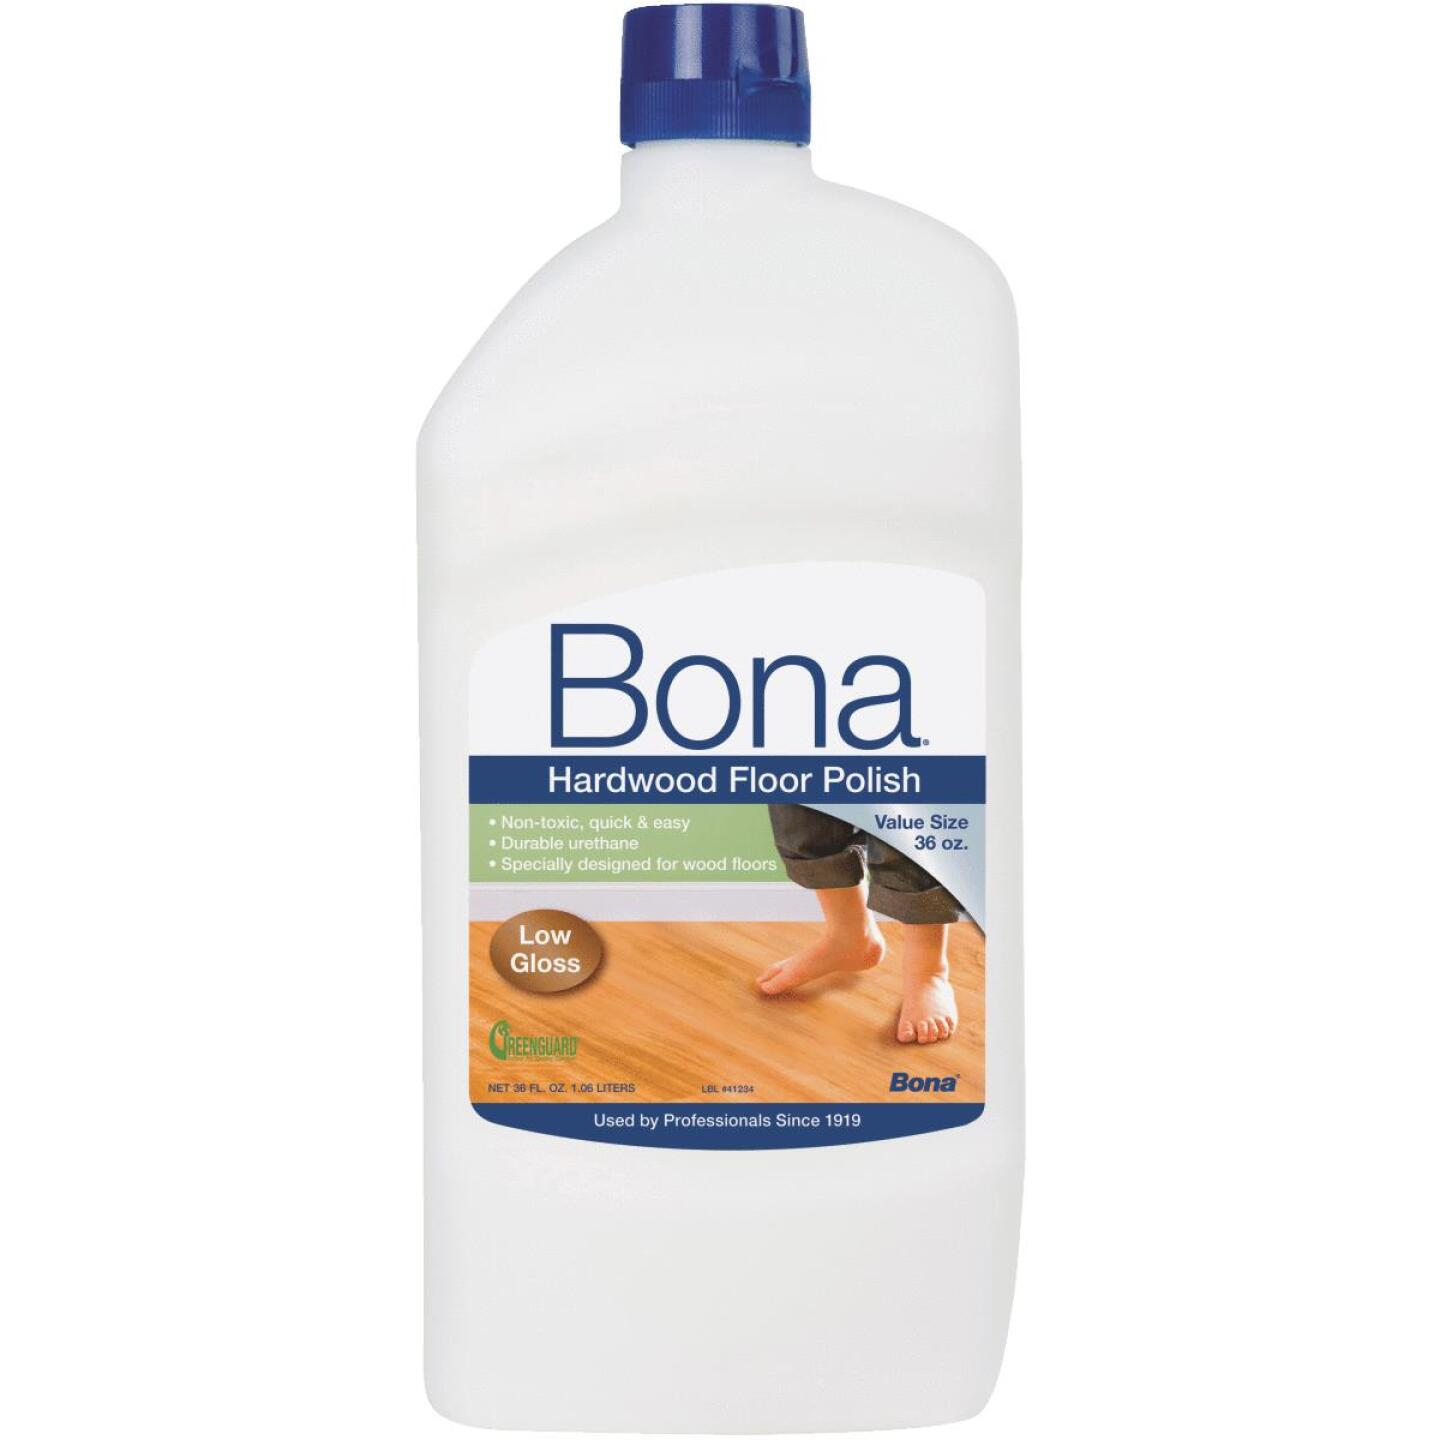 Bona 36 Oz Low Gloss Hardwood Floor Polish Do It Best World S